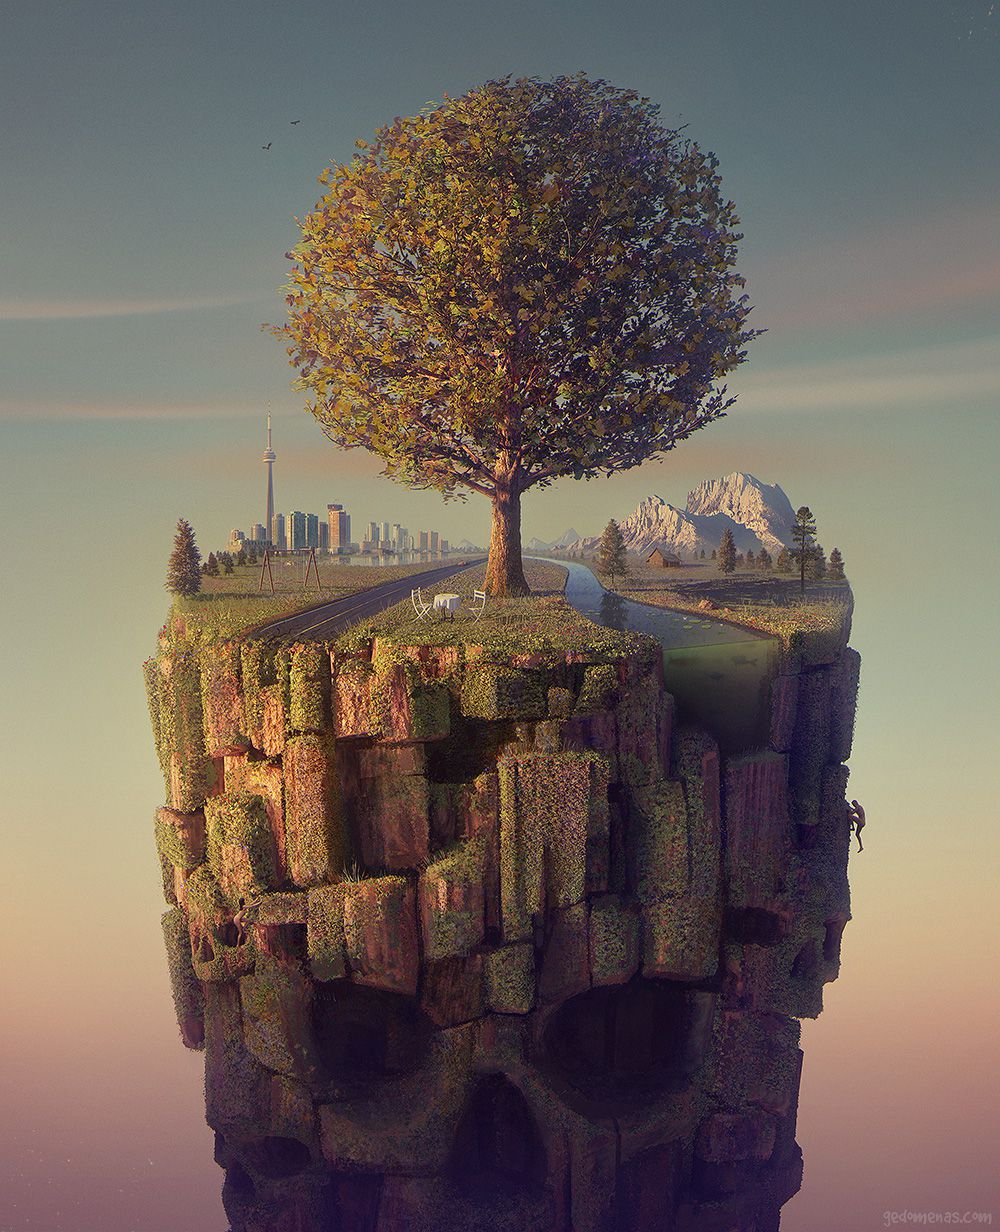 Coffe Date - Dreamlike Landscapes Awesome Surrealist Illustrations By Gediminas Pranckevicius